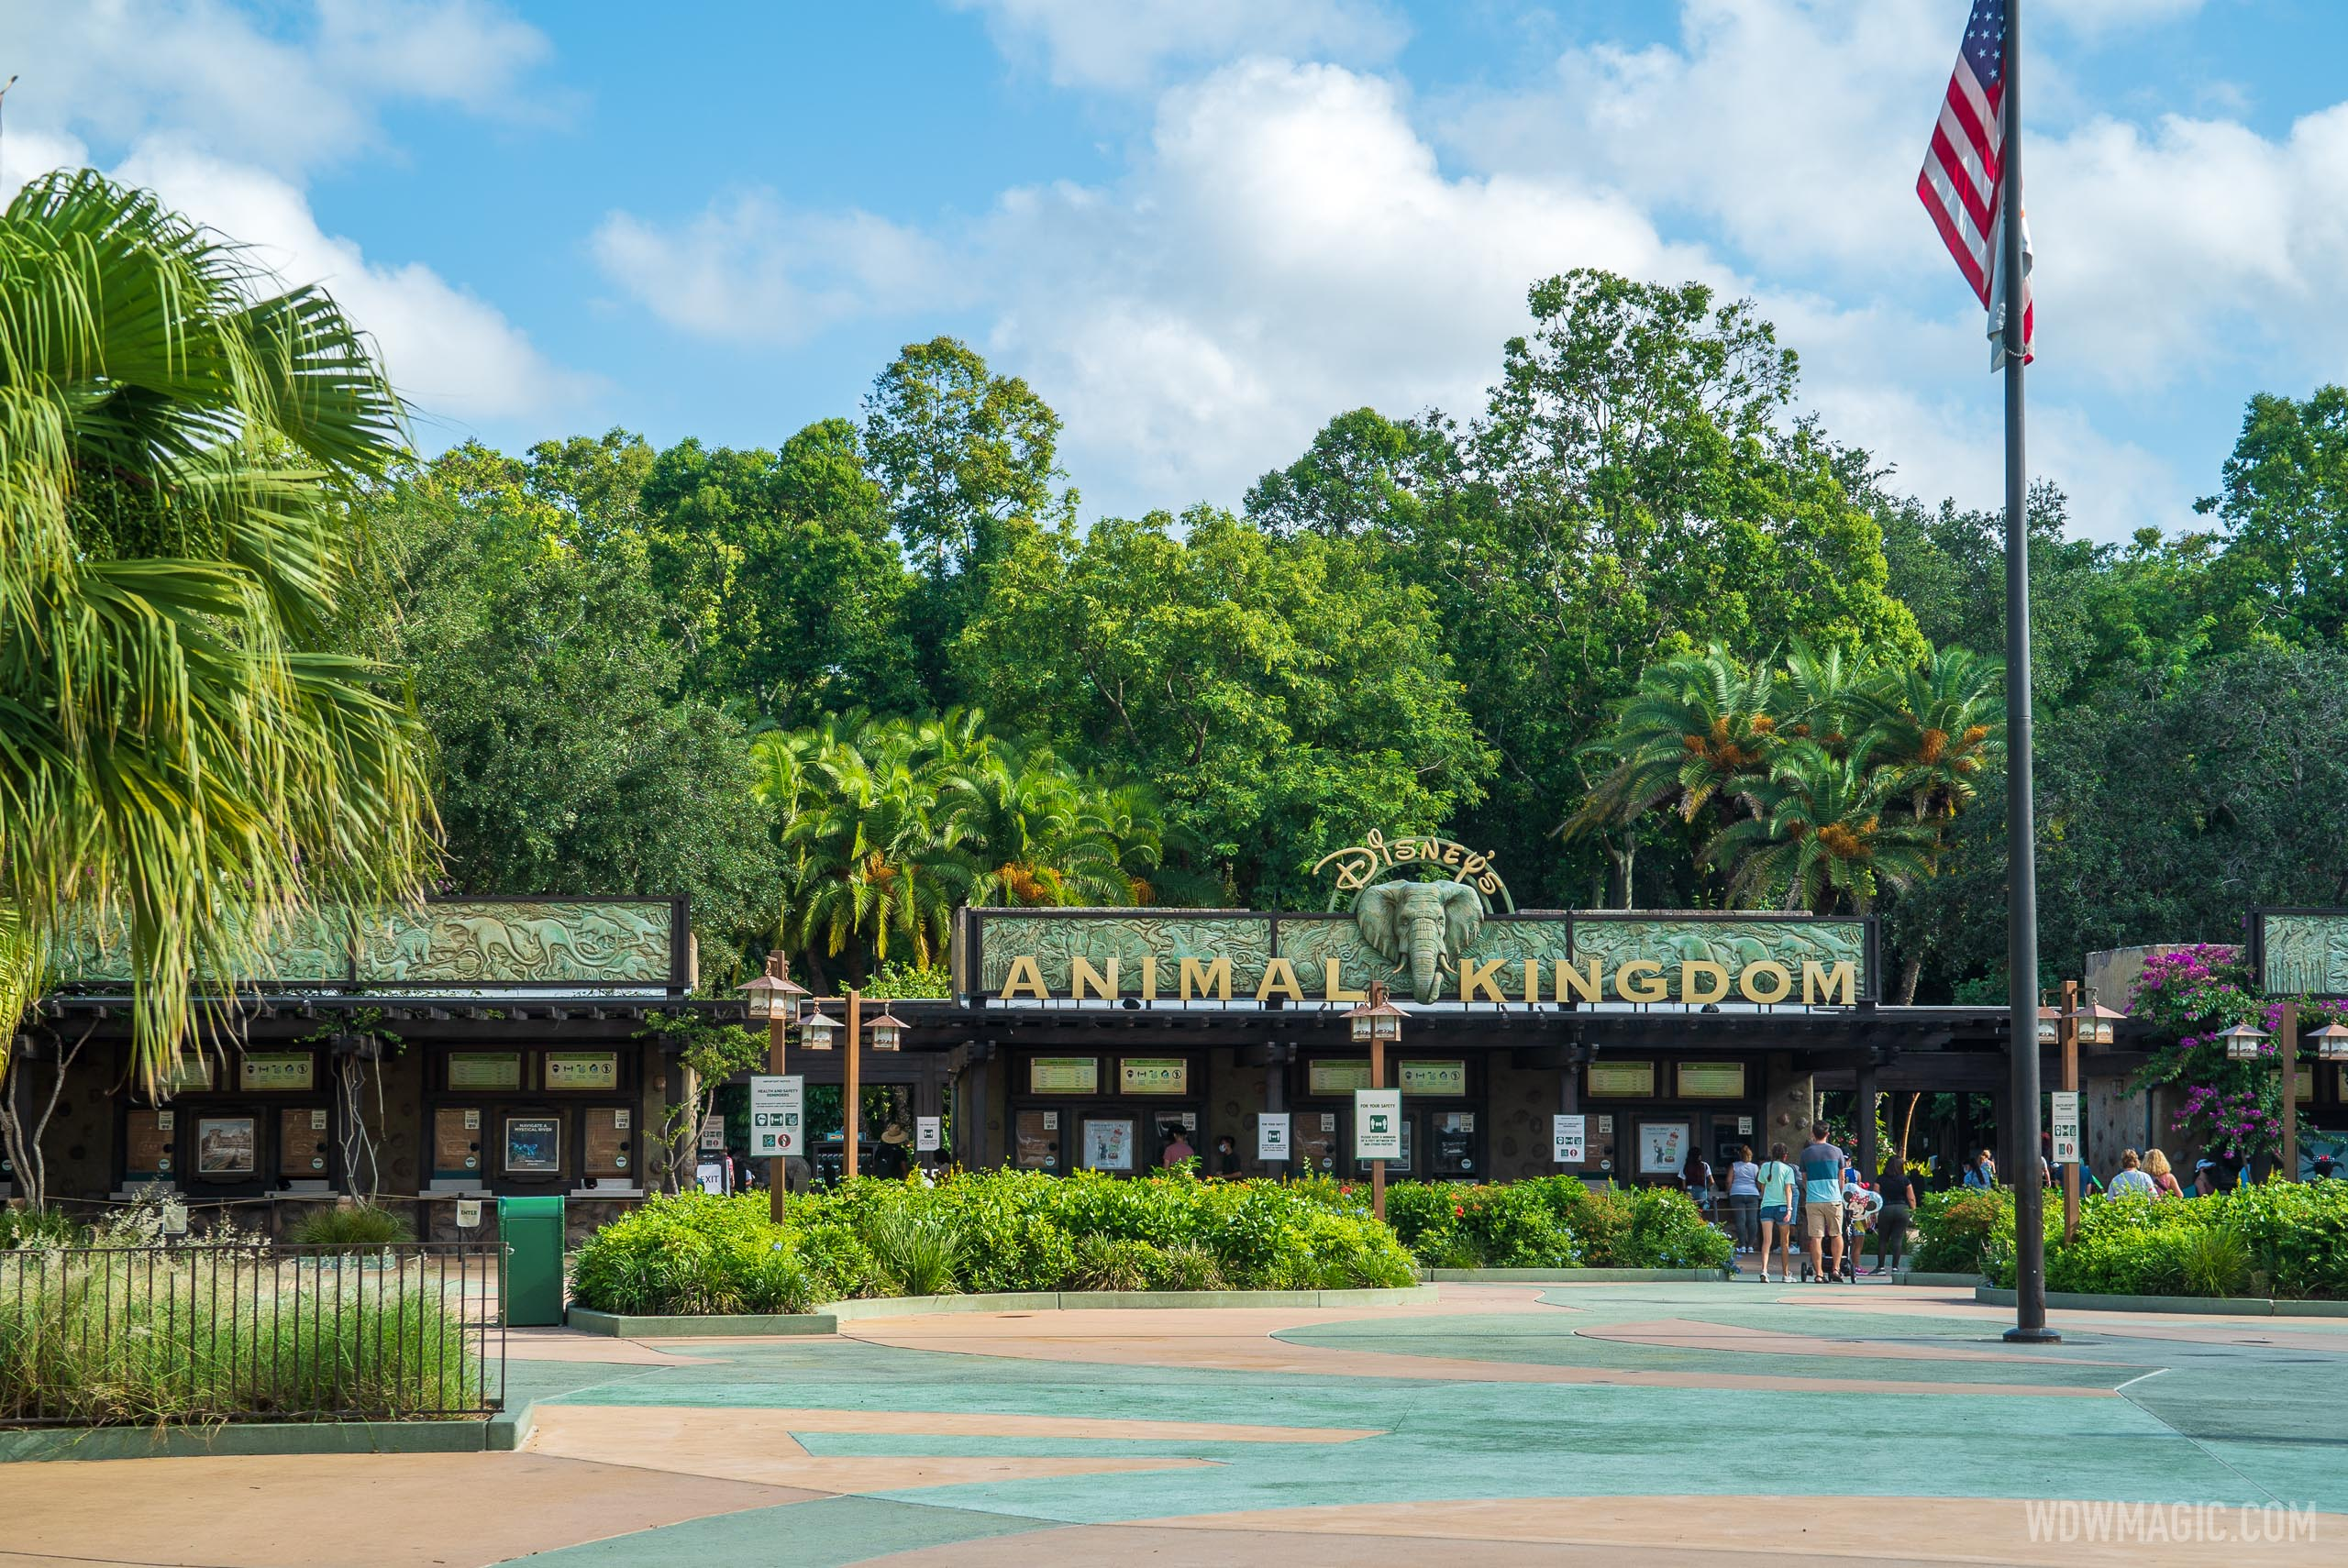 Disney's Animal Kingdom walk-through with COVID-19 restrictions